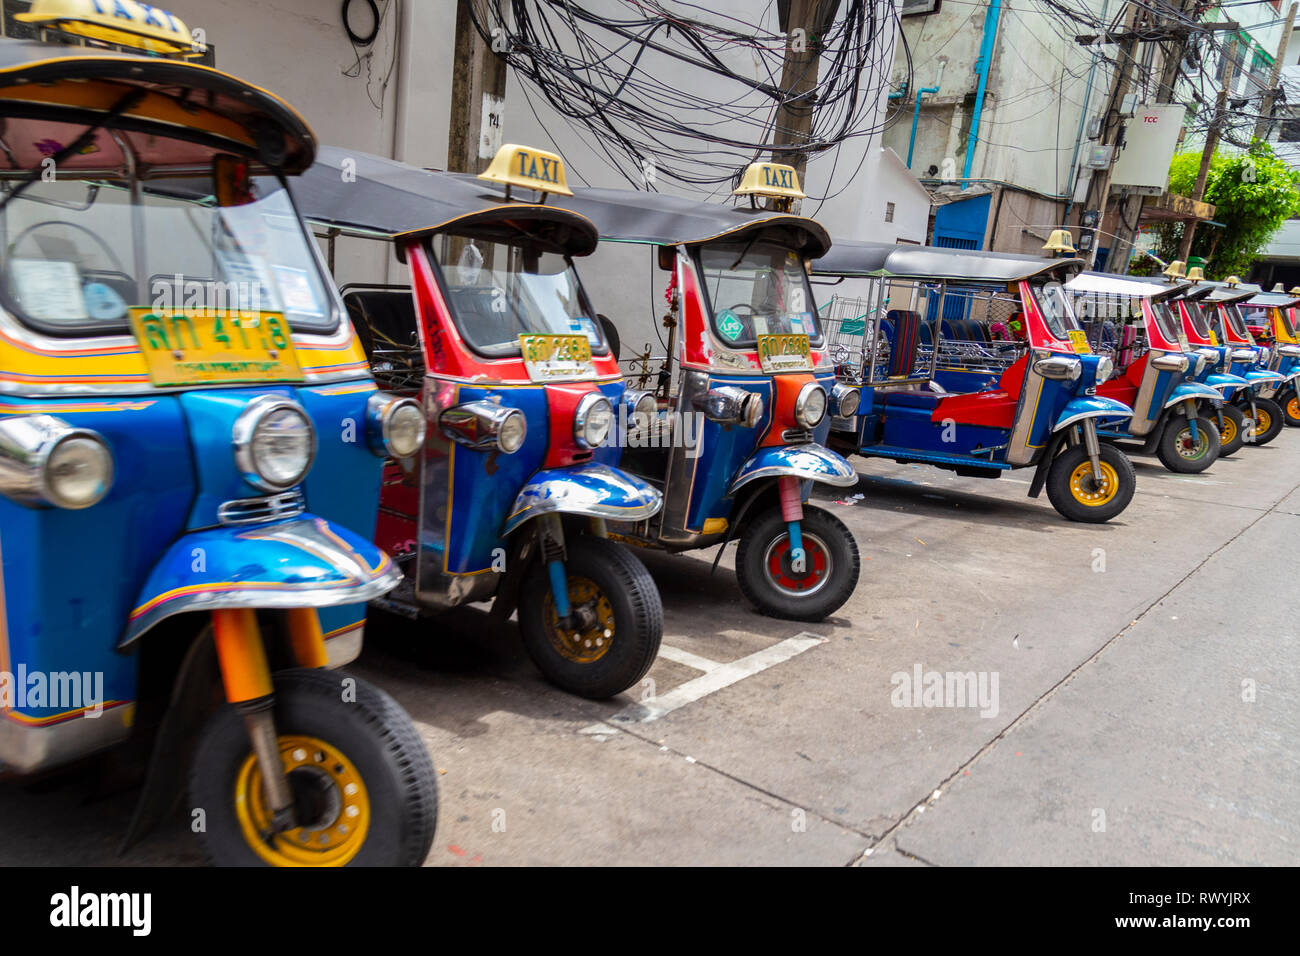 Typical transport in Thailand for tourists and people of the country. They are usually very colorful - Stock Image